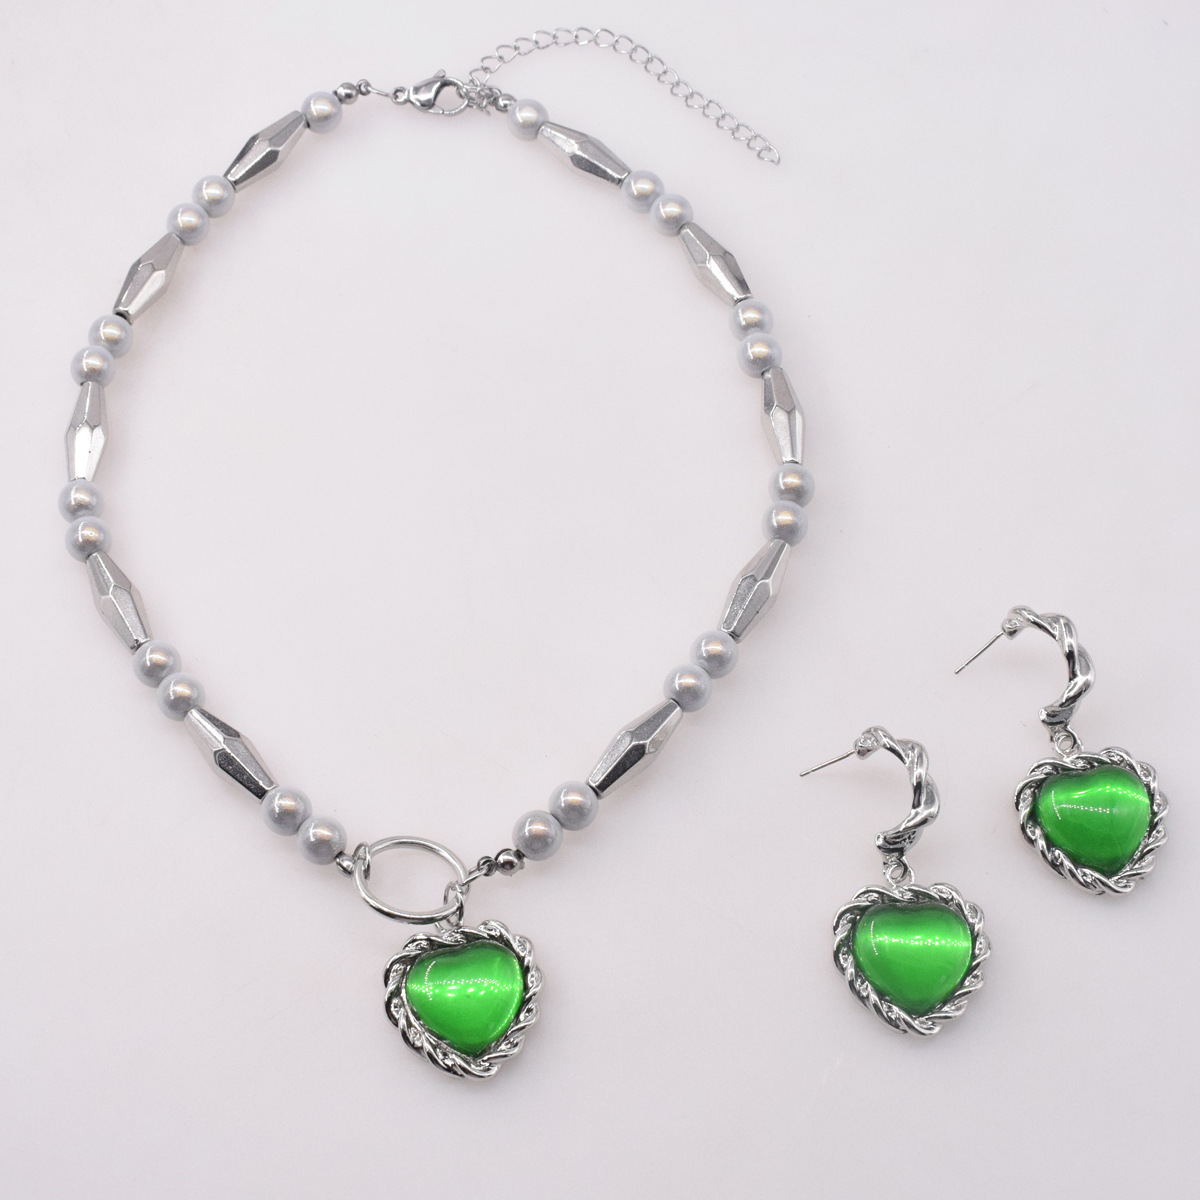 new splicing reflective pearl green heart pendent necklace earrings  NHNT367792